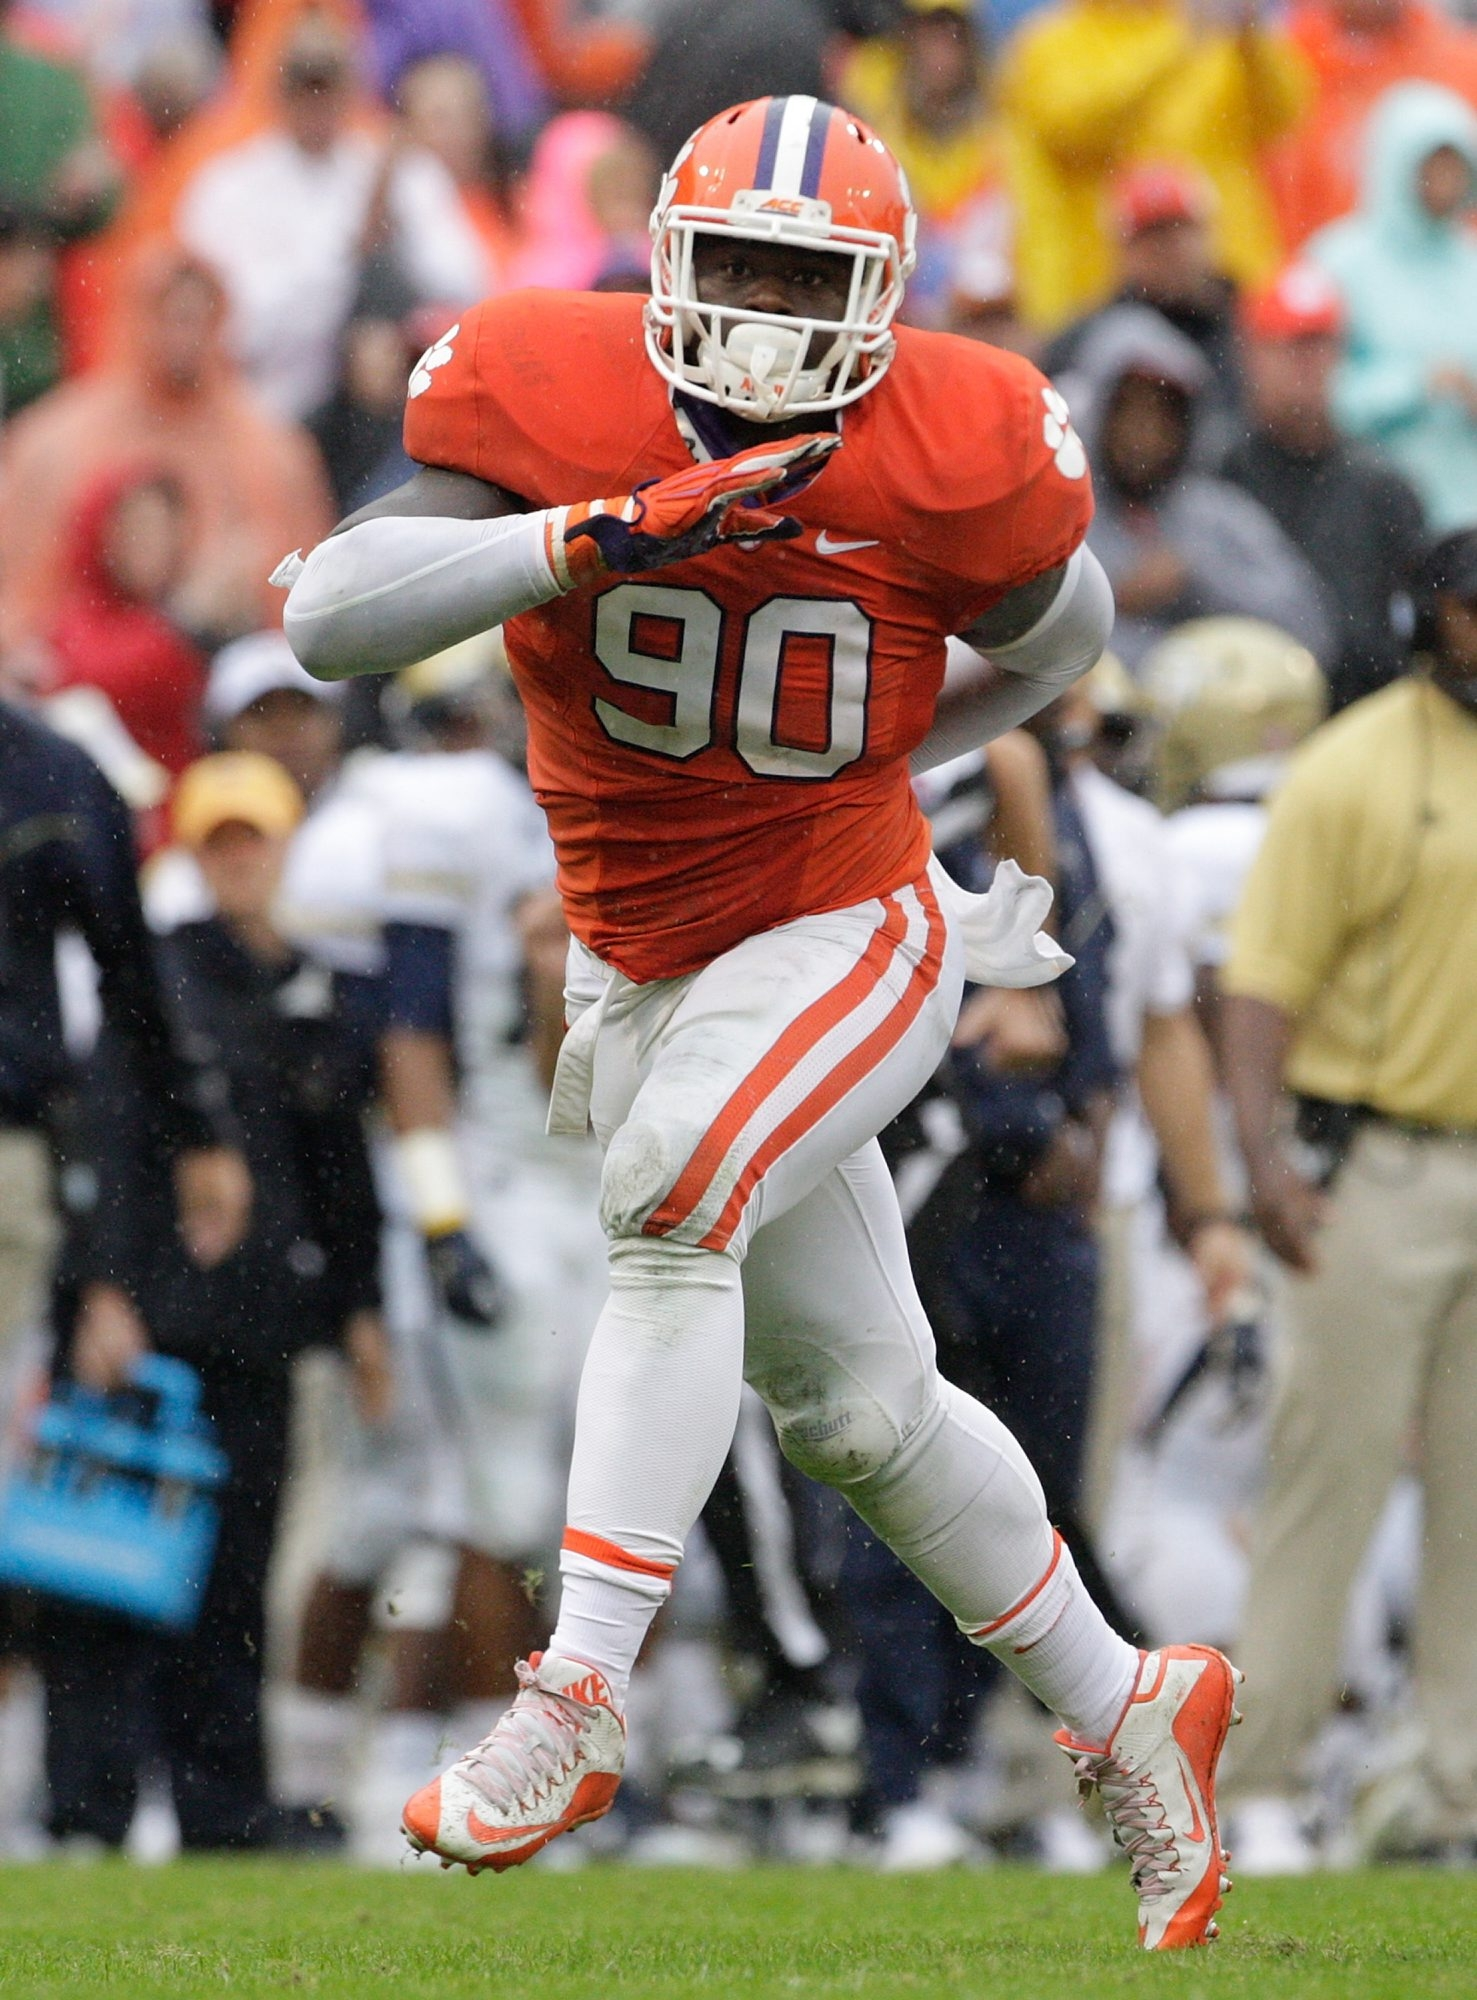 Clemson defensive end Shaq Lawson shot up the draft board this season. (Getty Images)